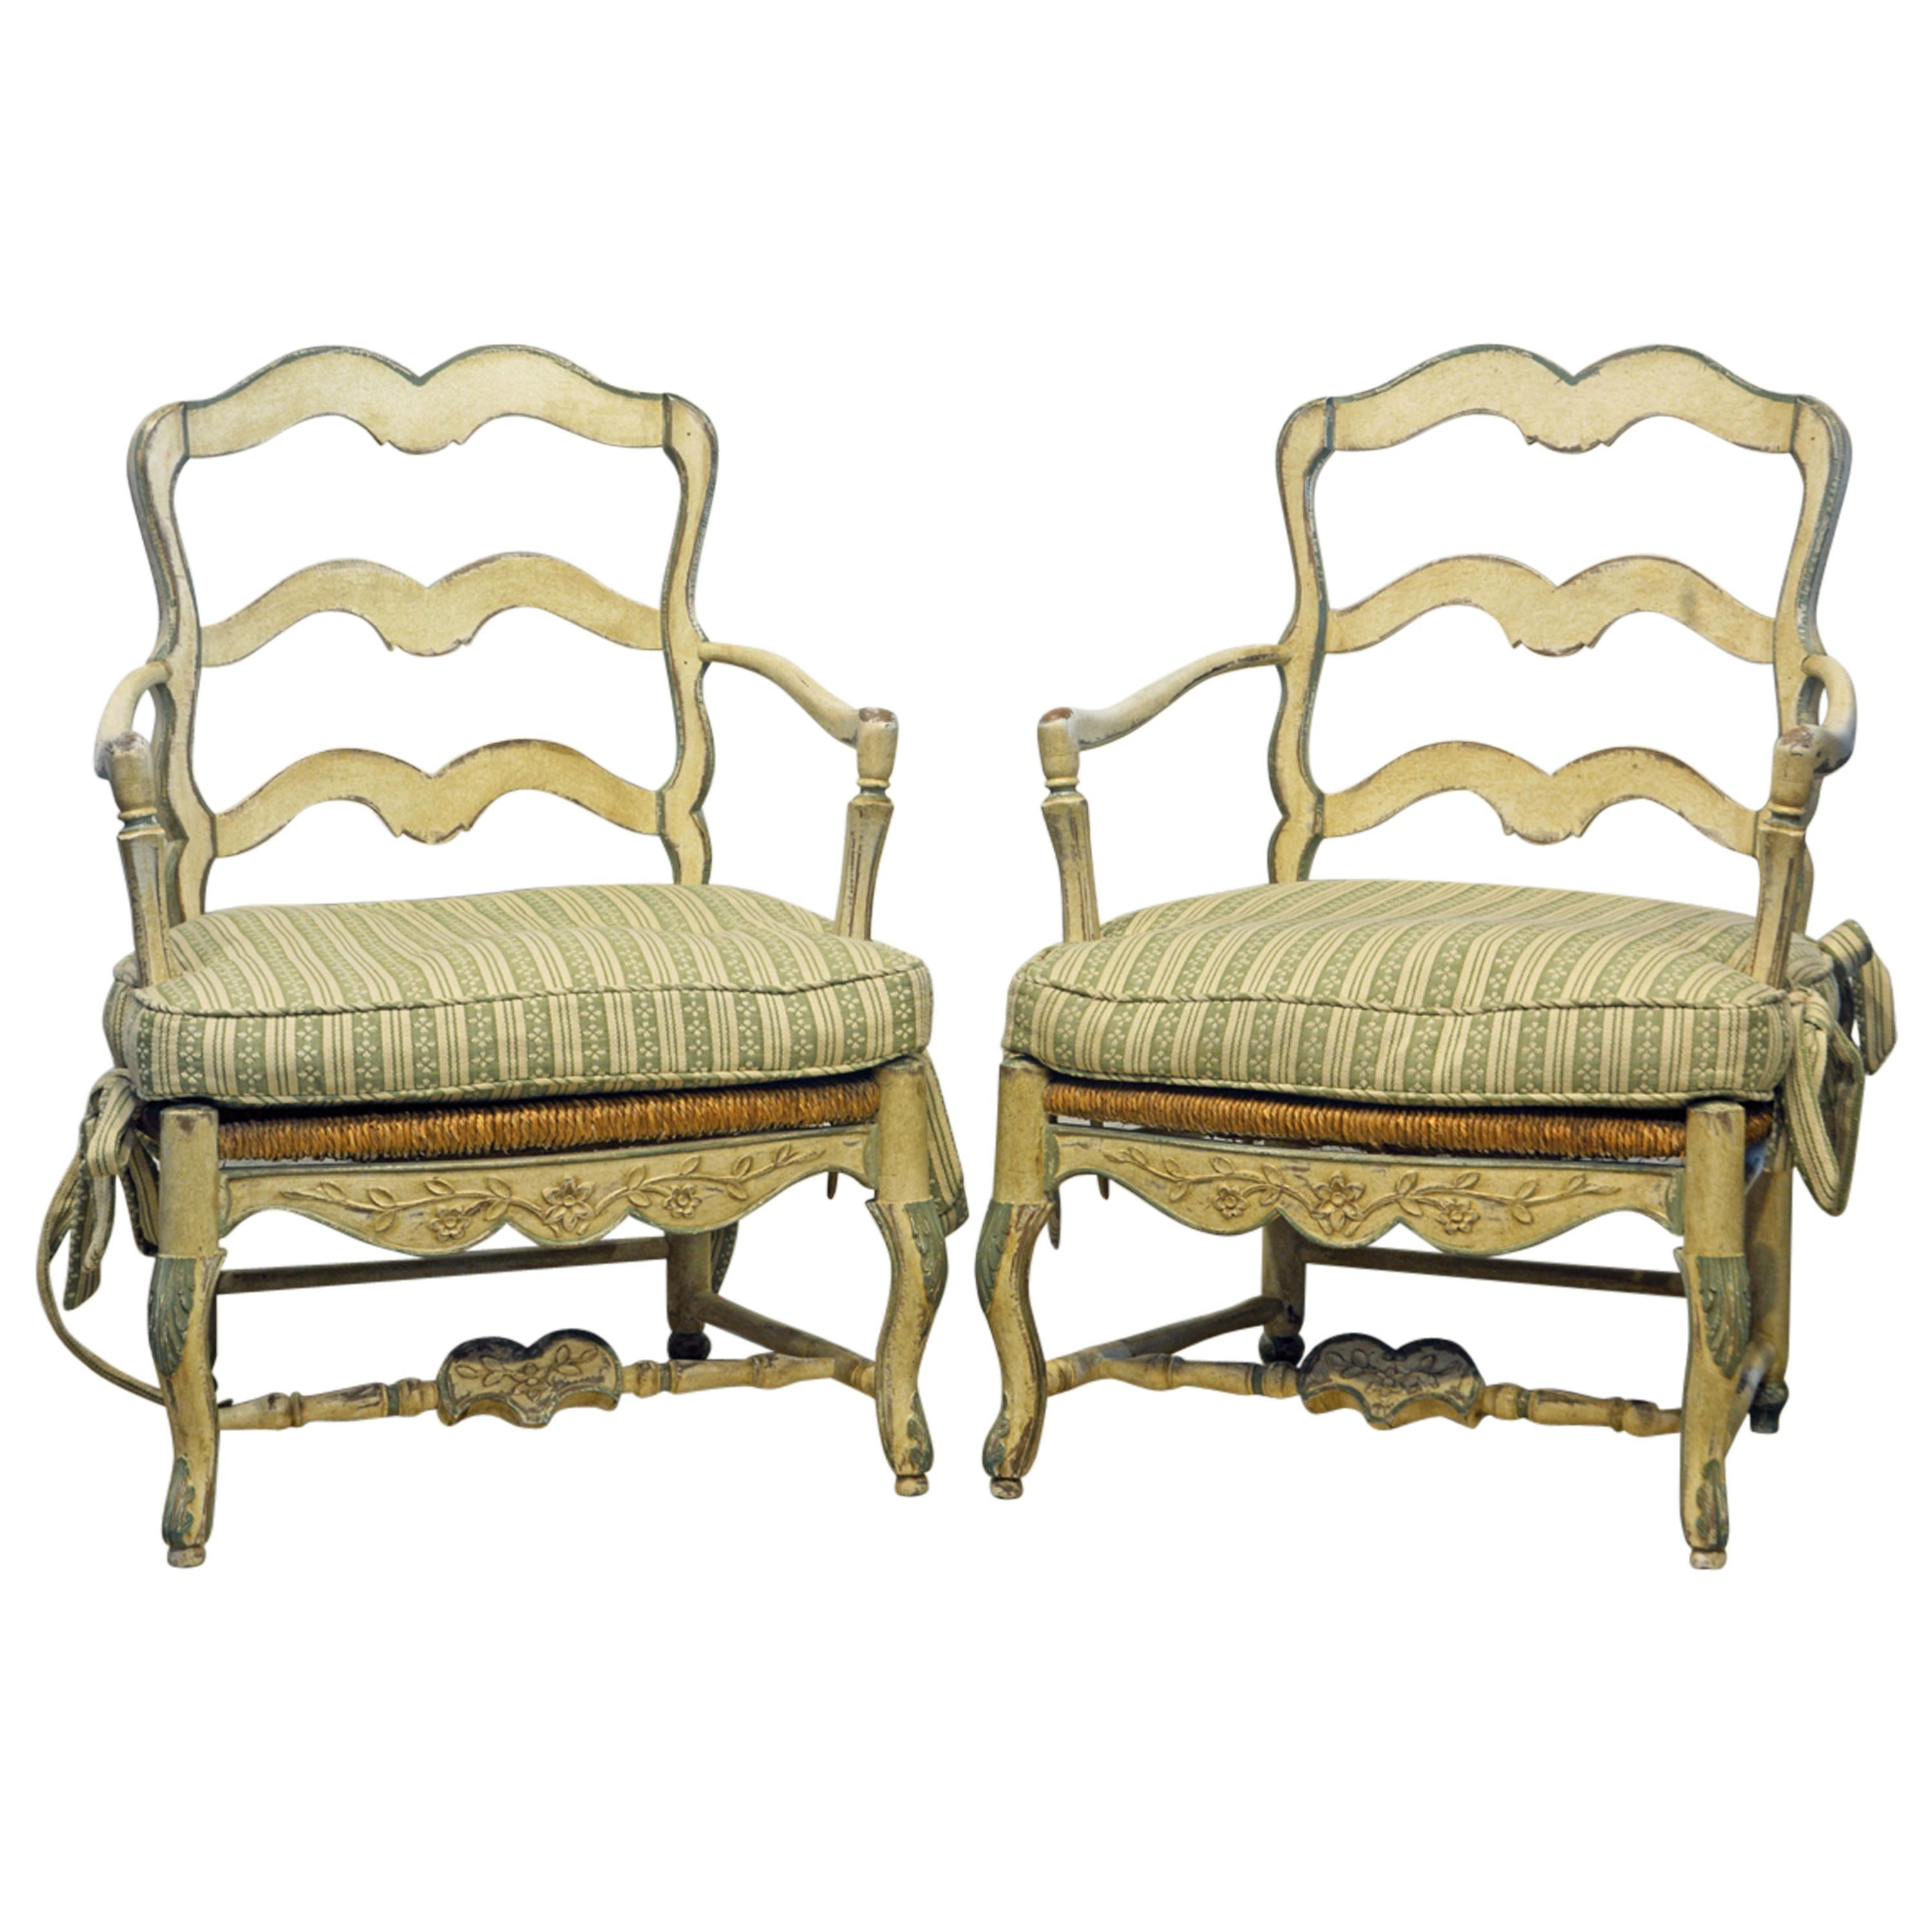 Pair of French Louis XV Style Carved and Painted Bergere Chairs, 20th Century